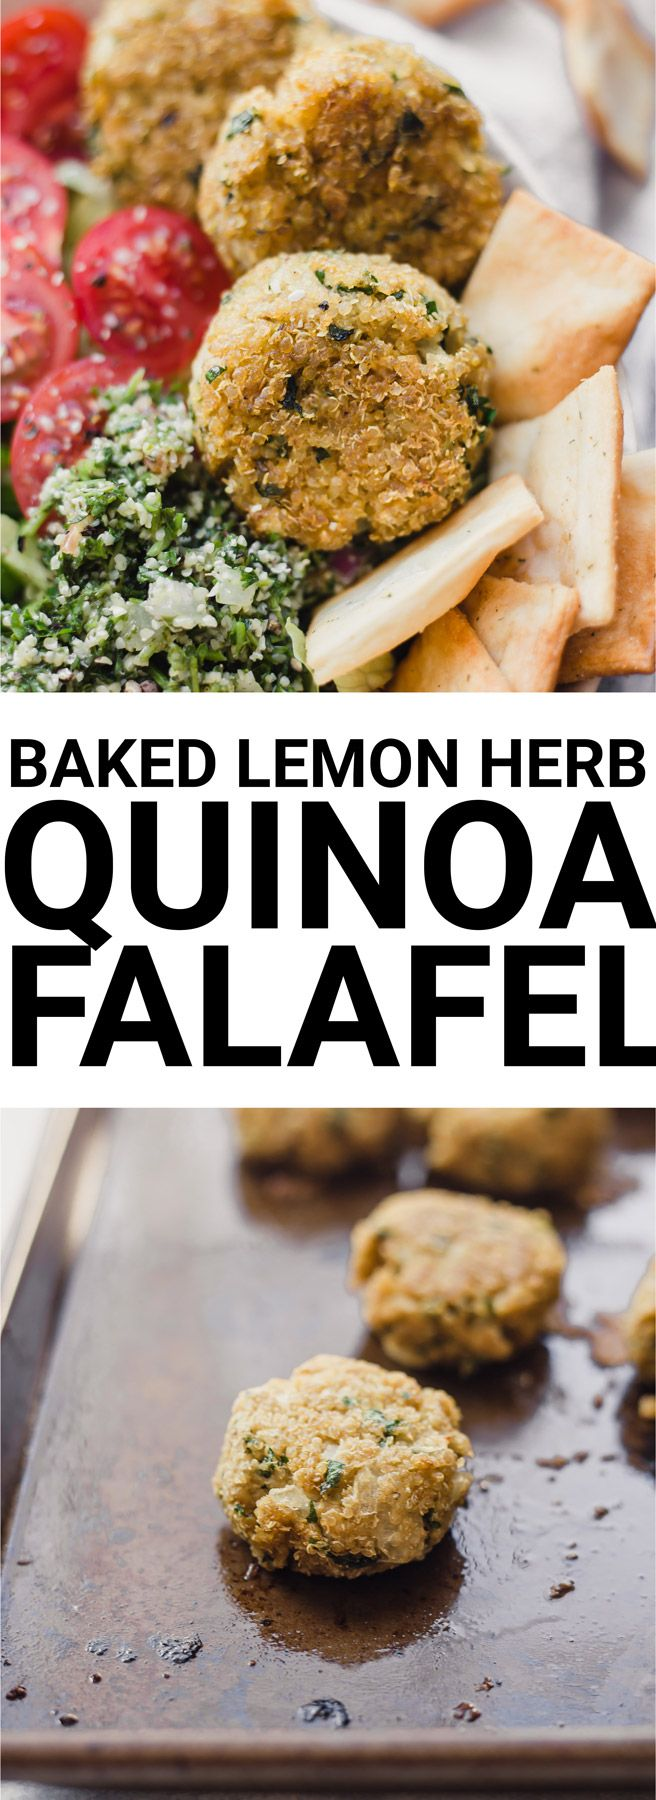 Baked Lemon Herb Quinoa Falafel: An easy, non-traditional falafel recipe that's full of flavor! Naturally vegan and gluten free, and perfect for topping grain bowls, salads, pita sandwiches, and more! || fooduzzi.com recipe #falafel #quinoa #vegan